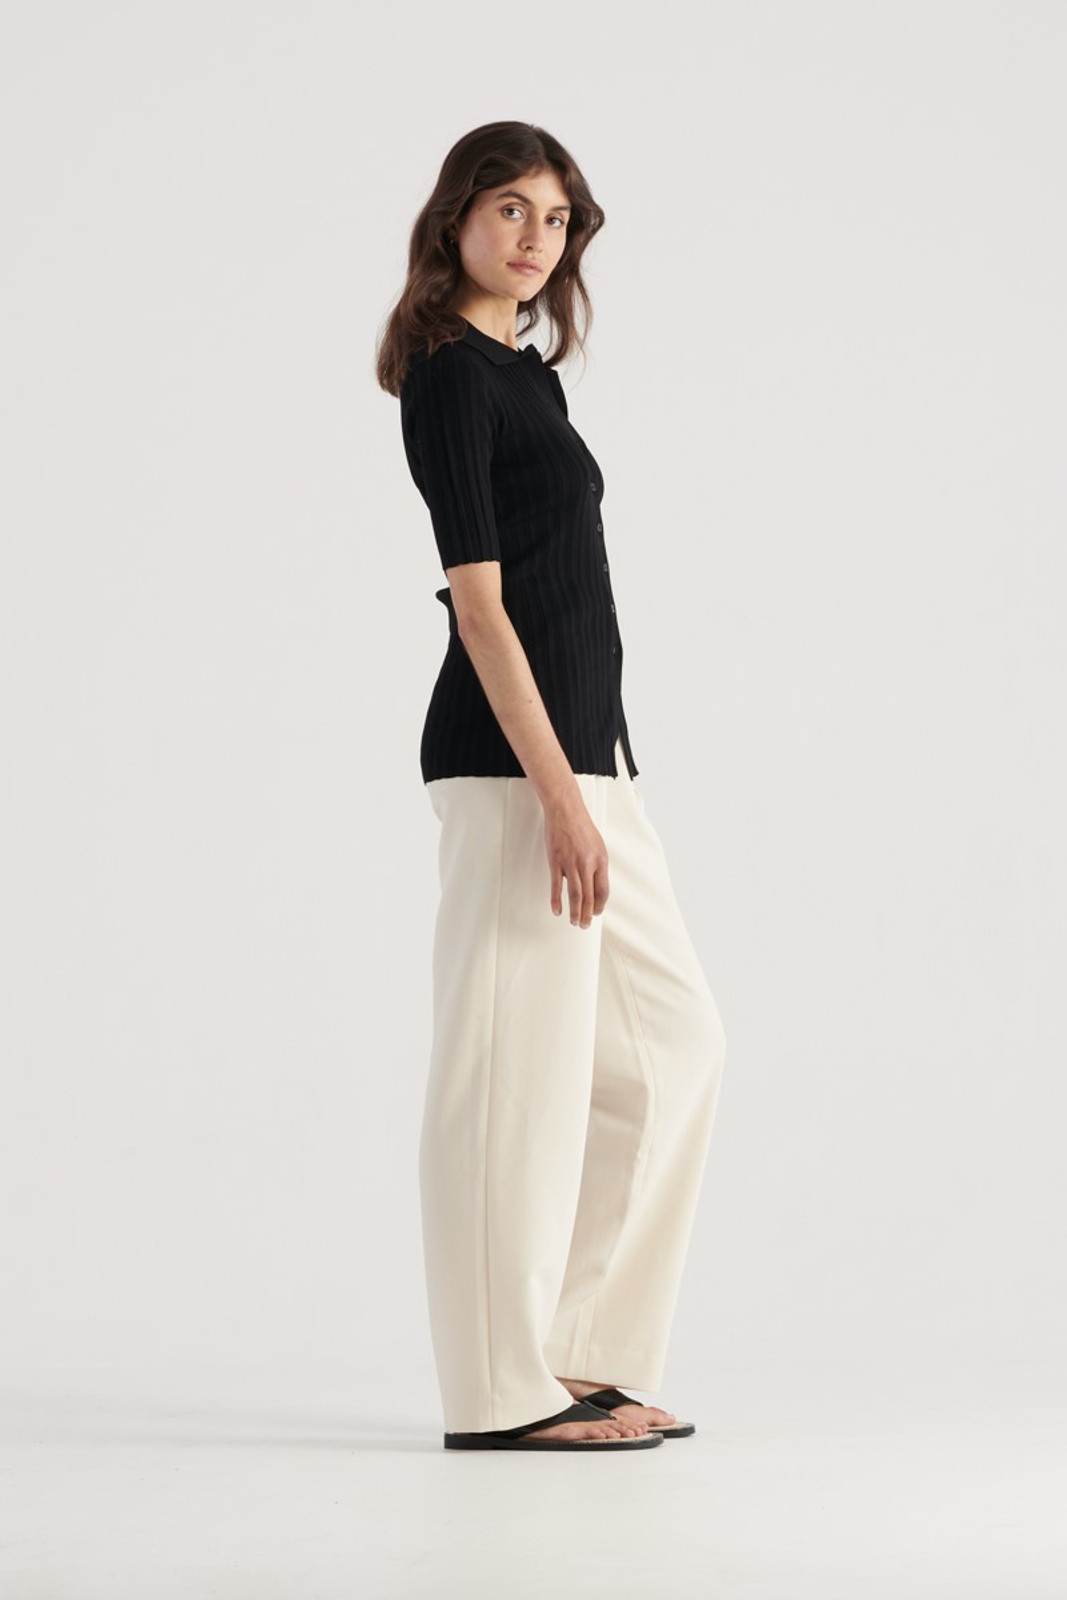 Elka Collective WOMENS Black Melody Knit 4